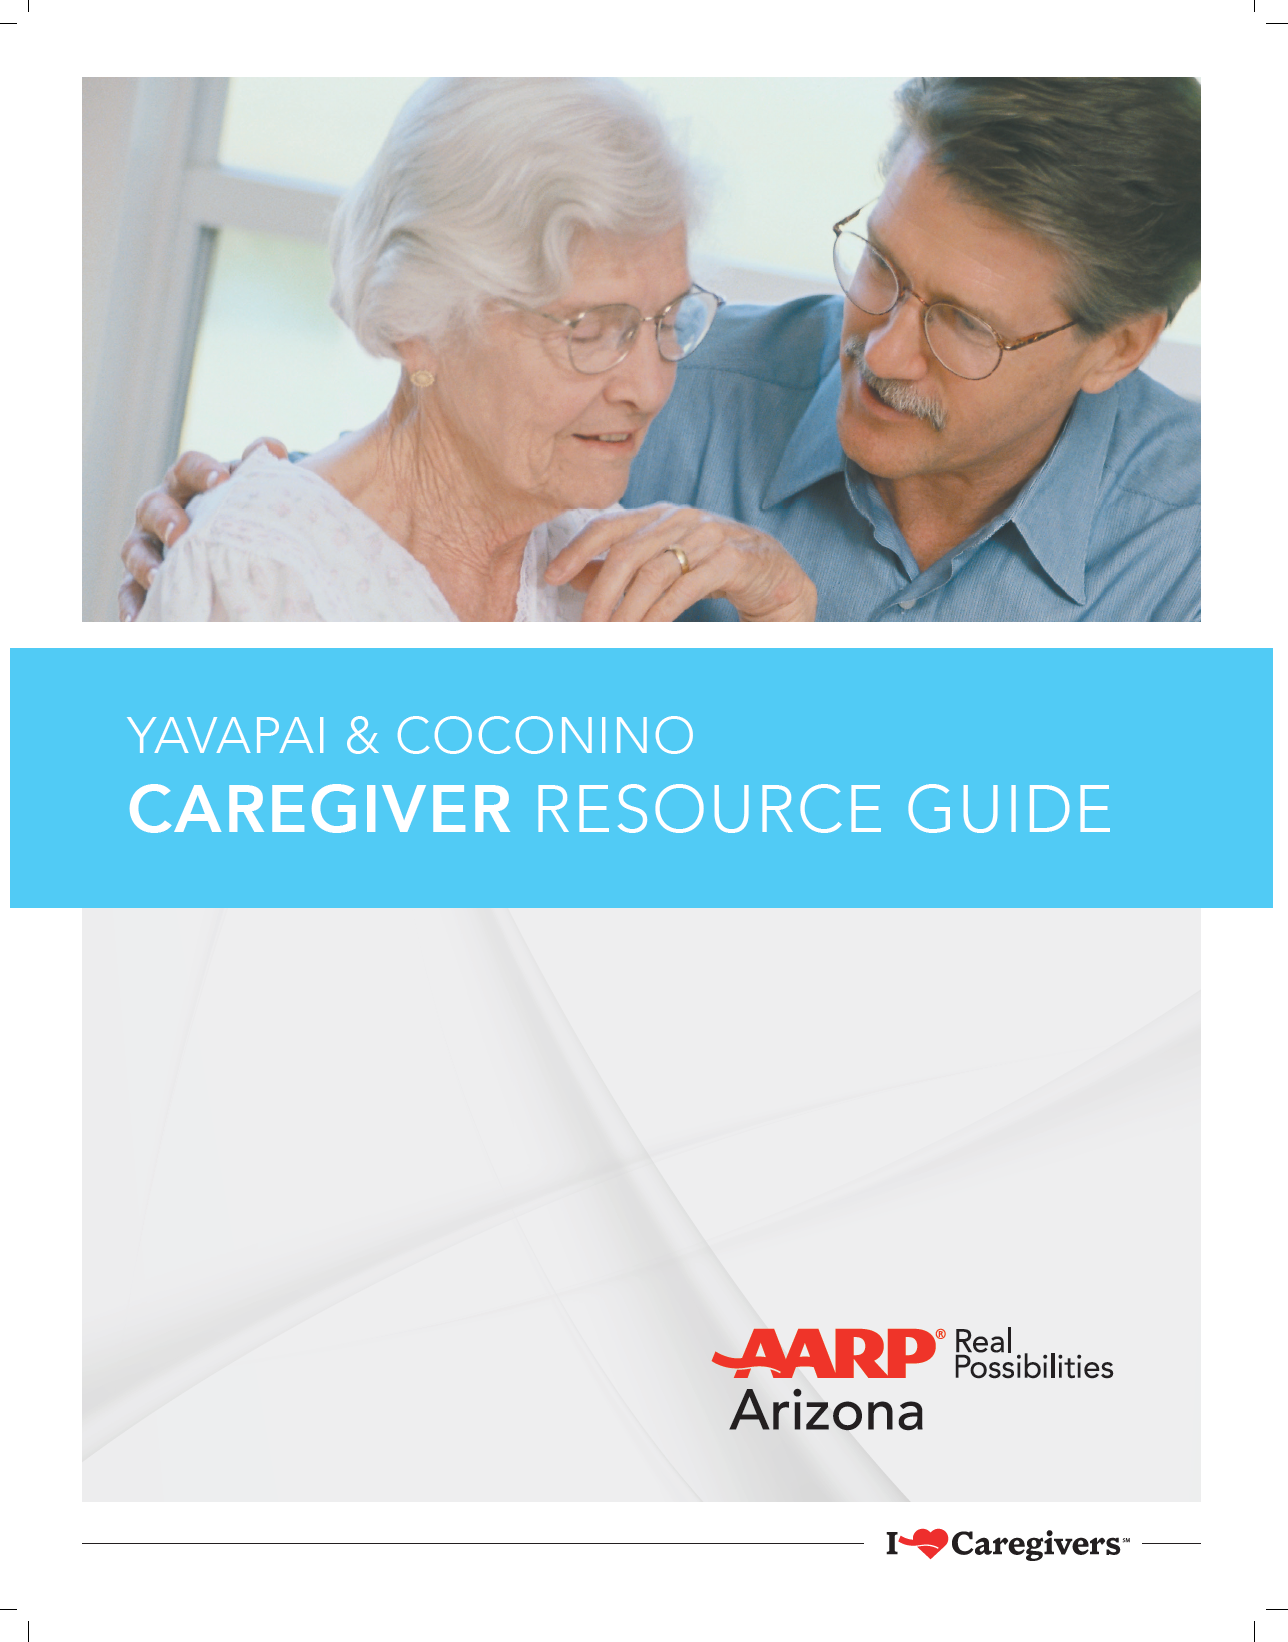 Caregiver Resource Guide Image.PNG